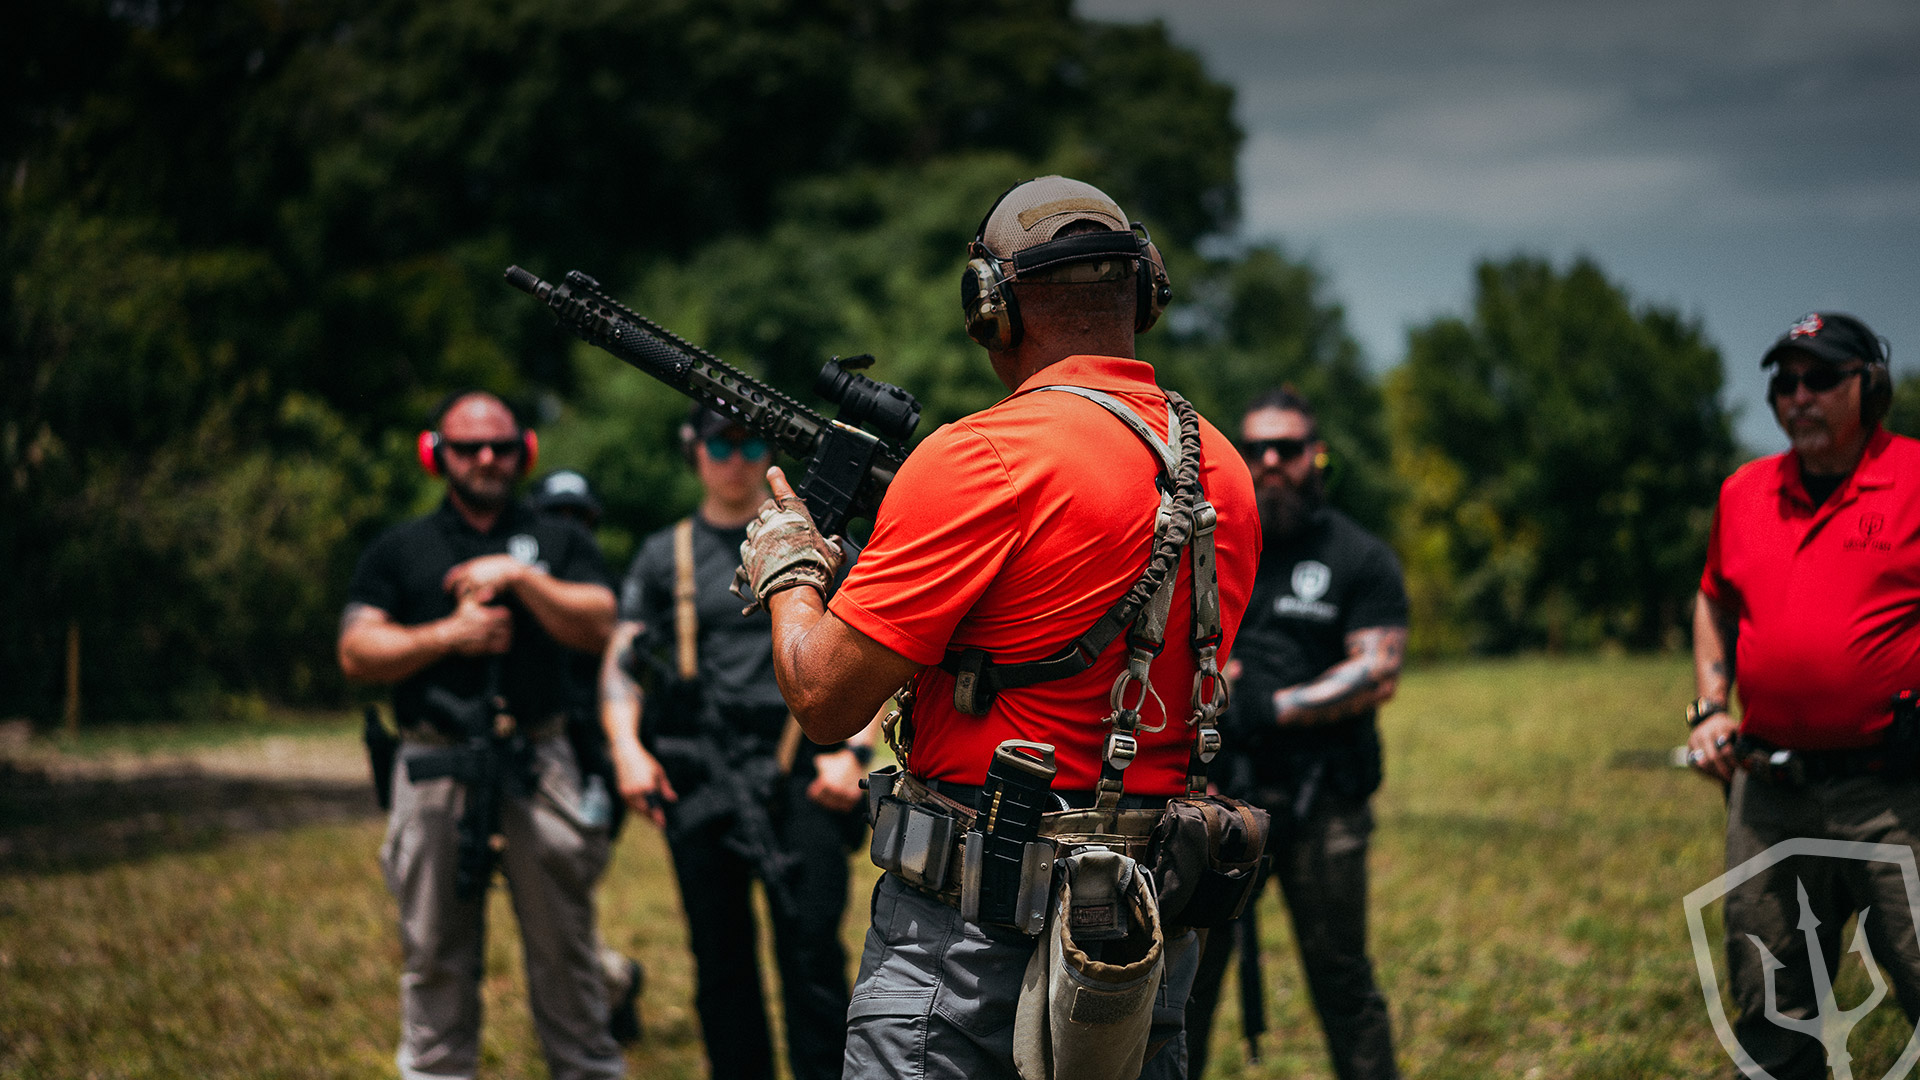 South Florida's leading firearms and tactical training